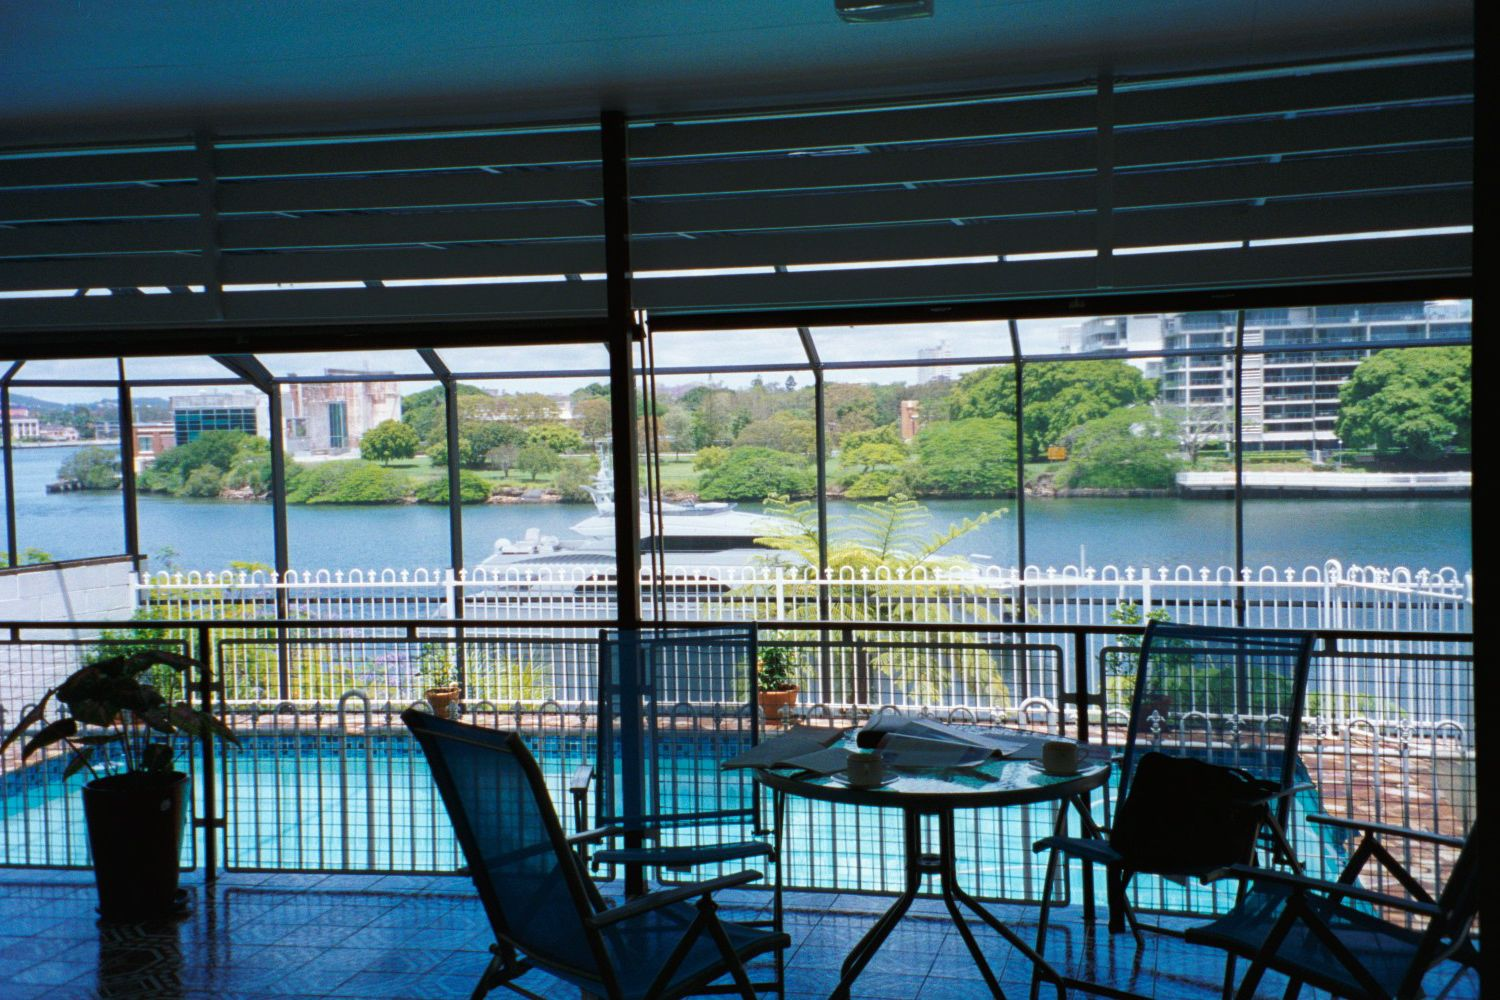 Living on the Brisbane River, at Hawthorne. The view across to New Farm from my balcony